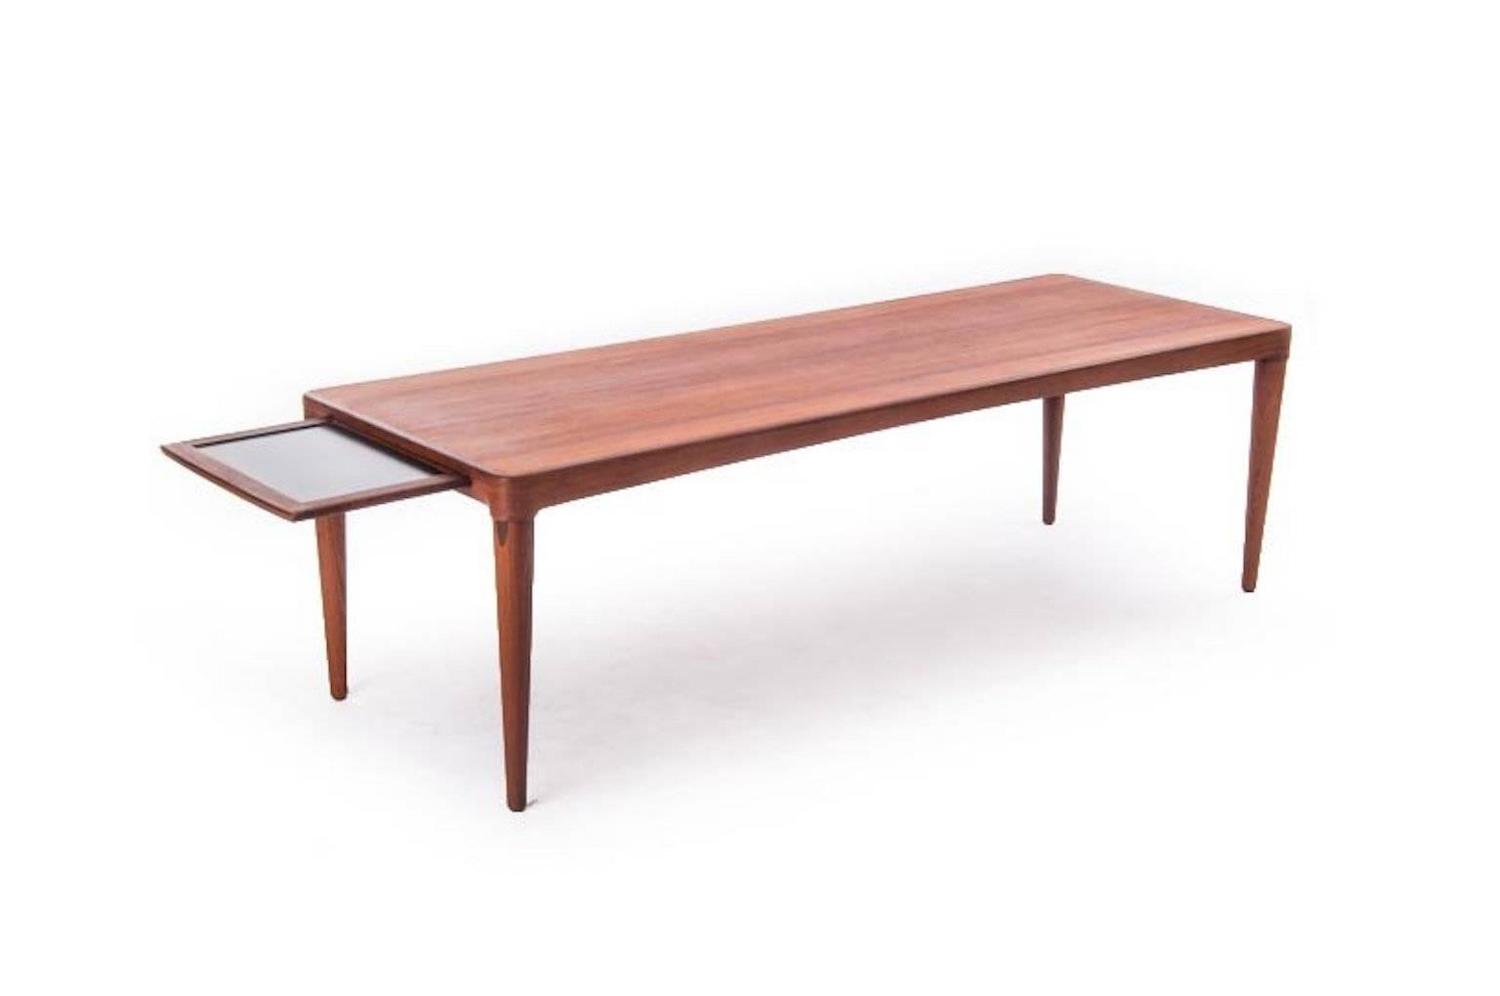 Vintage danish modern coffee table for sale at 1stdibs for Modern coffee table sale